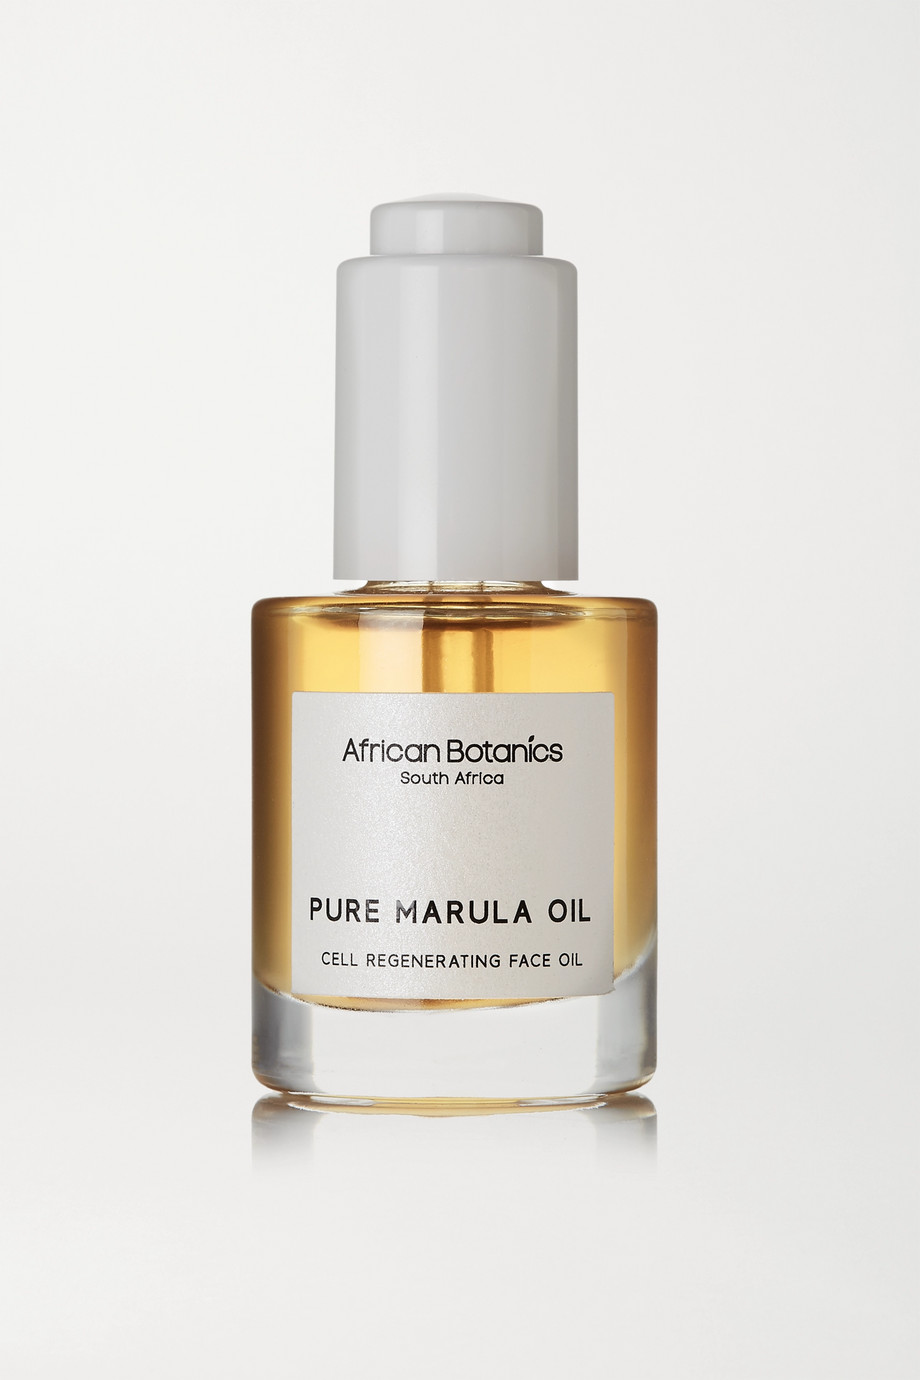 African Botanics Pure Marula Oil - Cell Regenerating Face Oil, 30ml